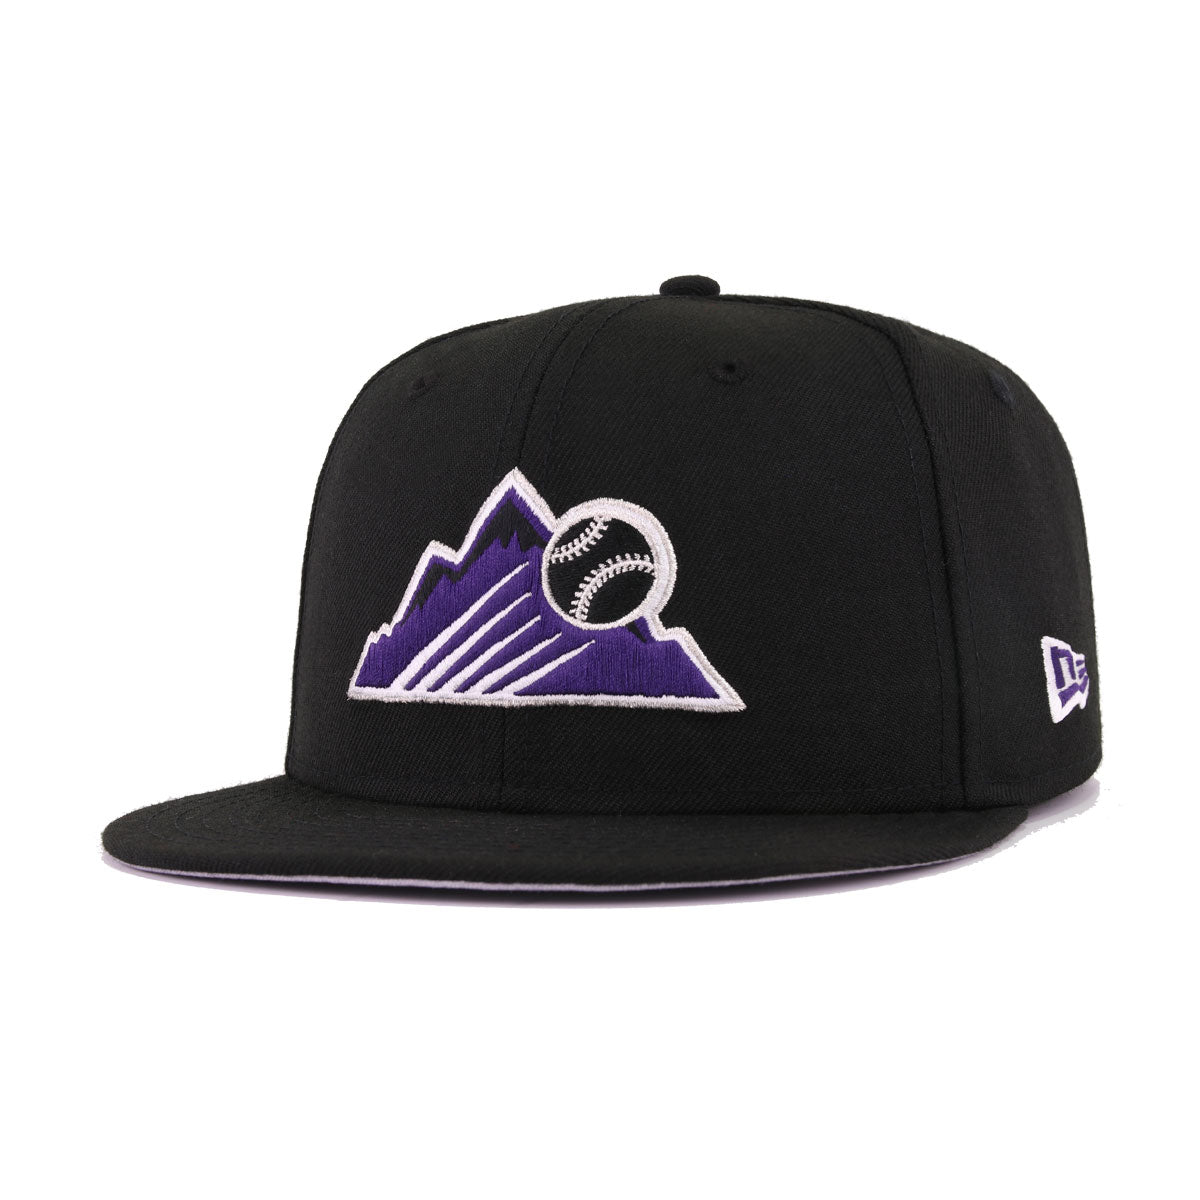 Colorado Rockies Black Purple Metallic Silver New Era 9Fifty Snapback 3acf8fc71b6